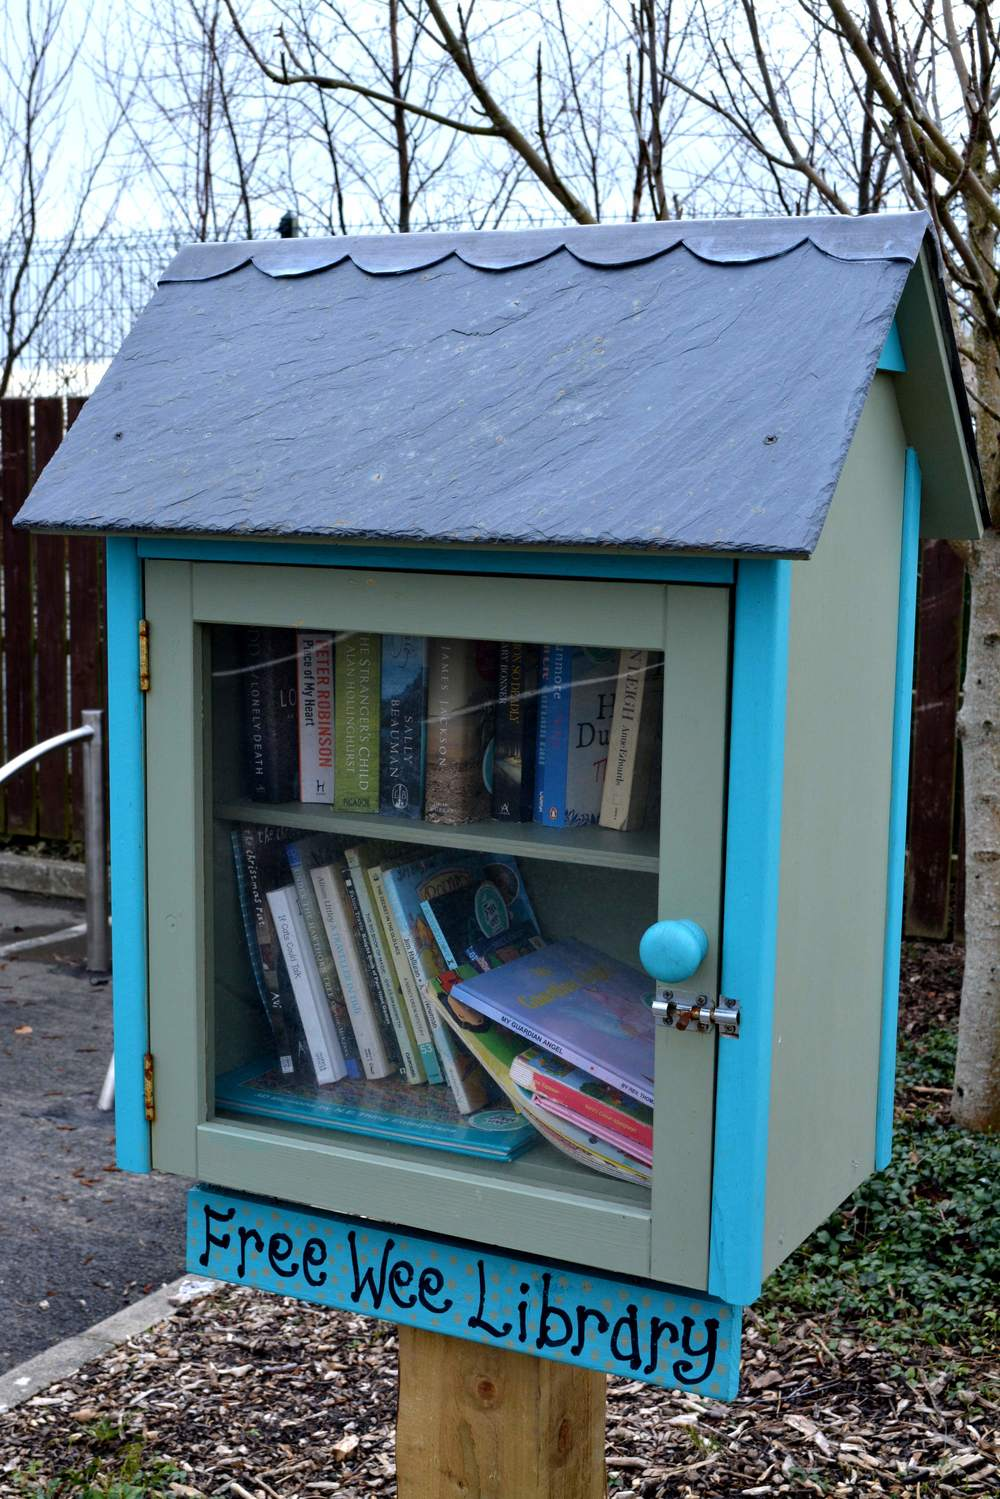 Free Wee Library @ Visit Inishowen Tourist Office, Buncrana, Co Donegal